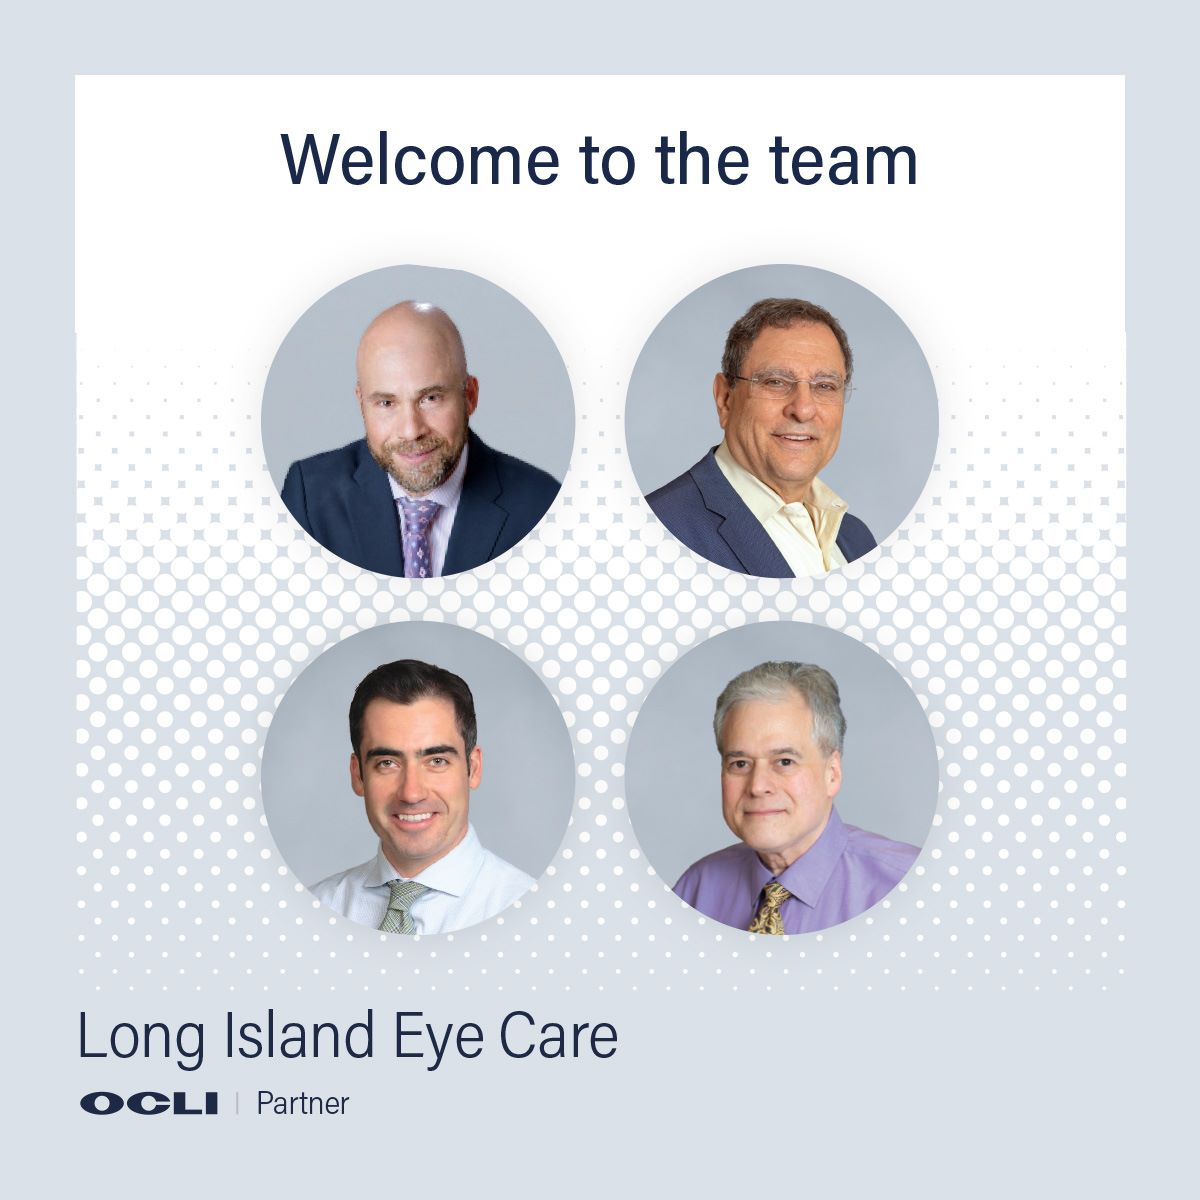 welcome to the team long island eye care